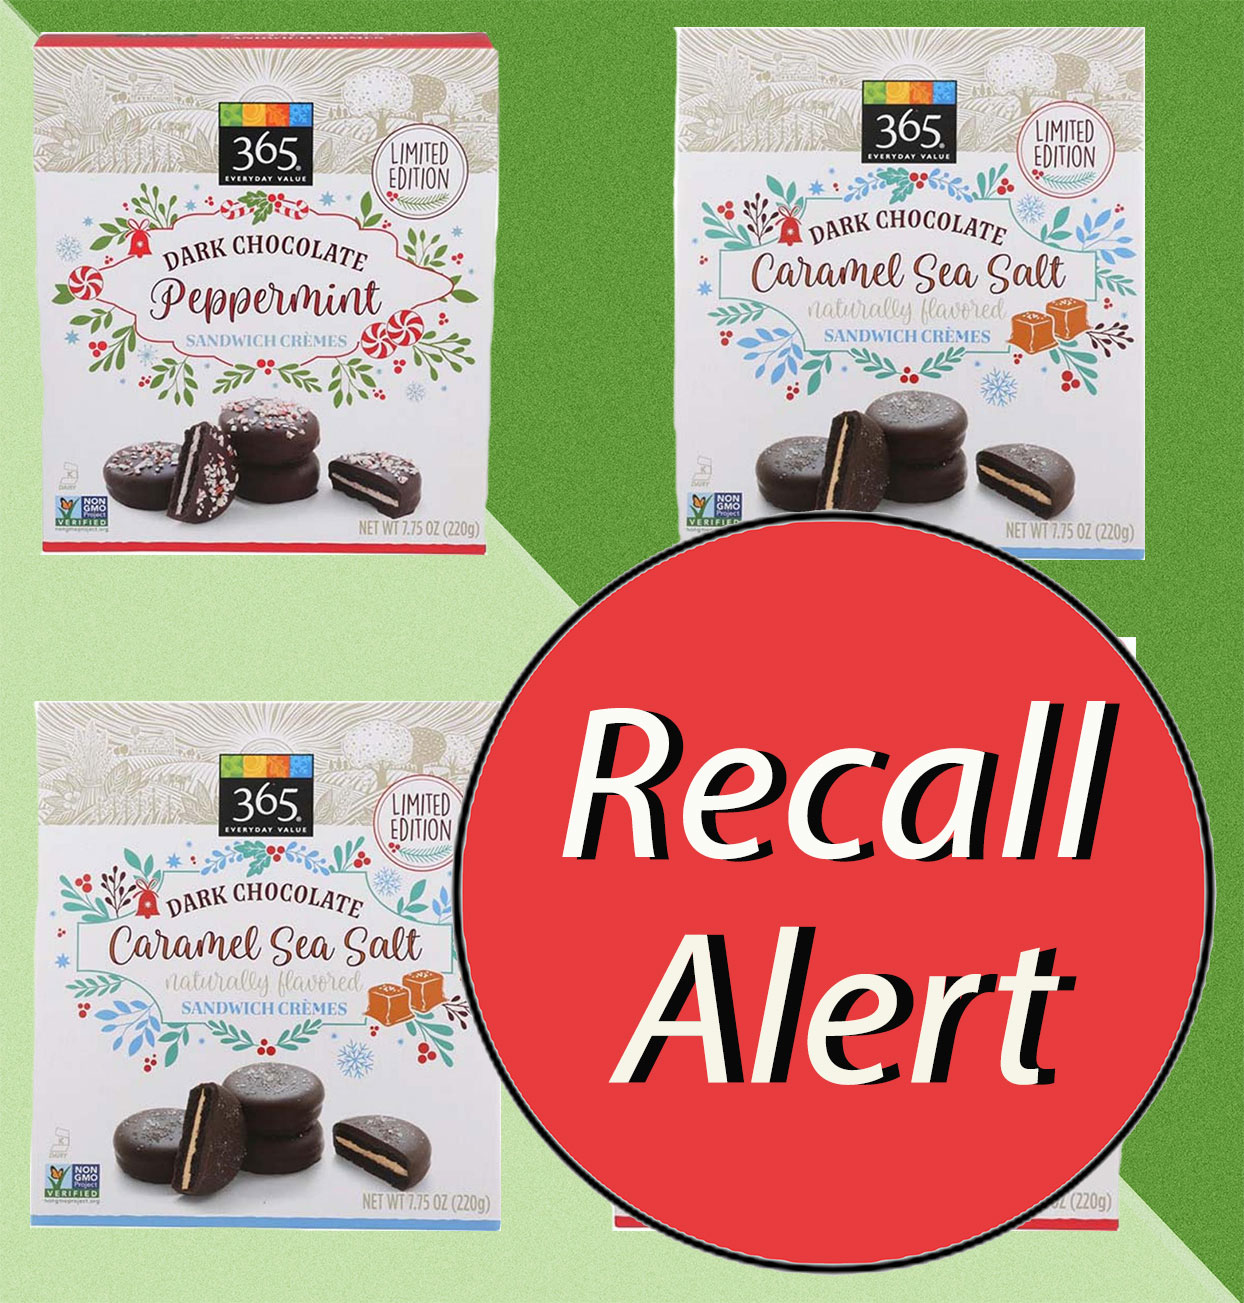 Whole Foods Sandwich Cookies Recall